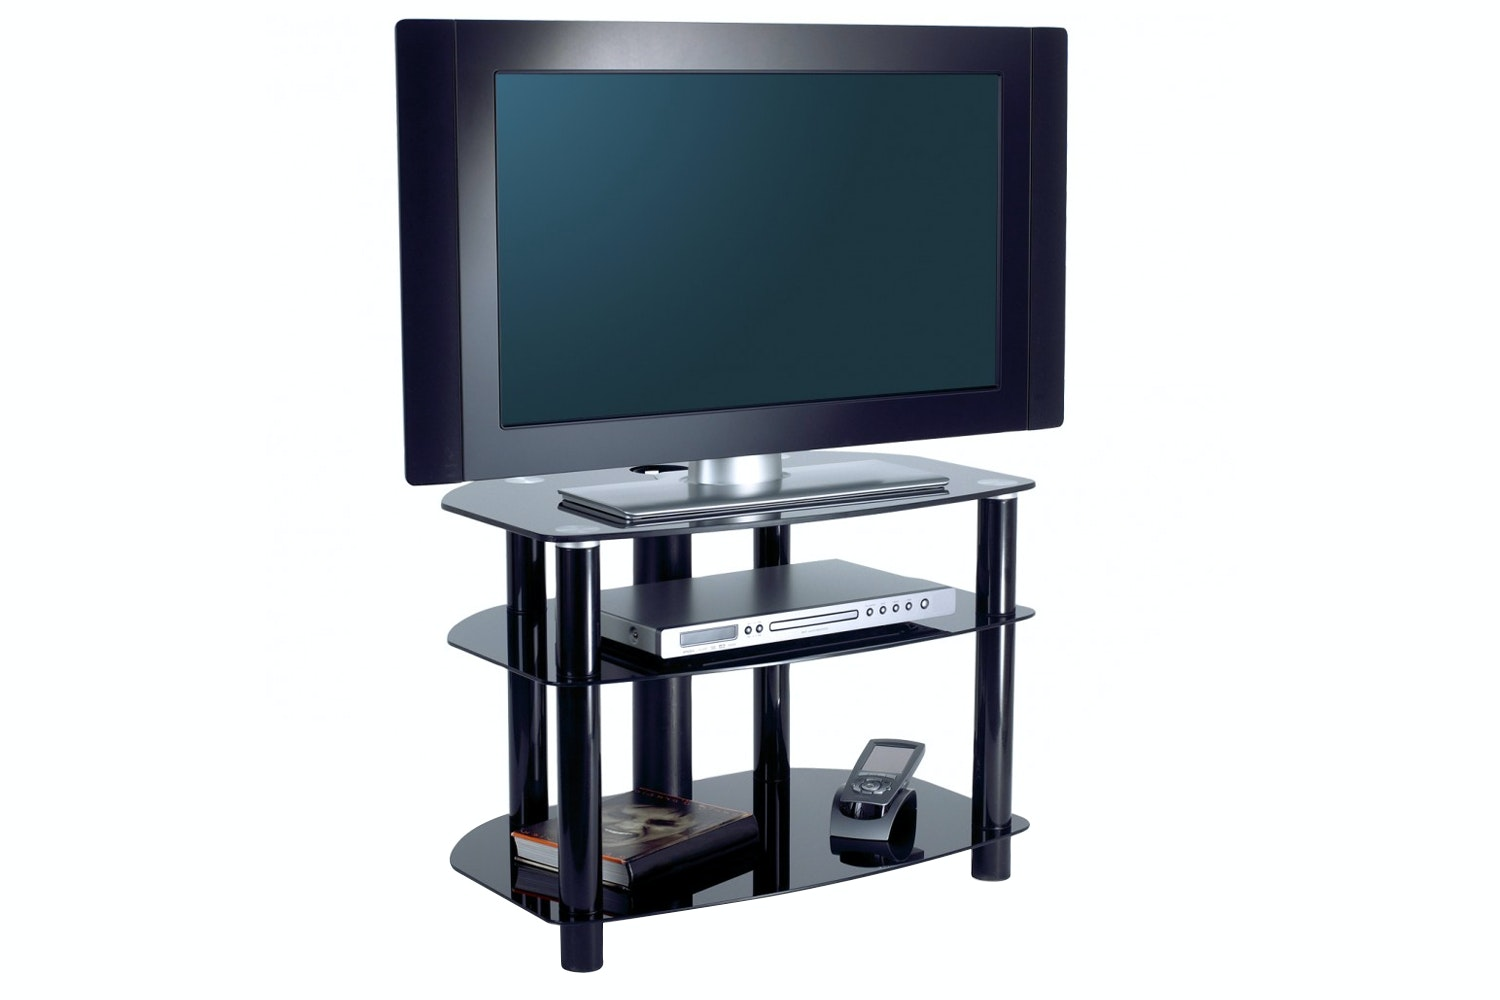 Alphason 710 cm 3 Tier Tv Stand | AVCR32/3BLK